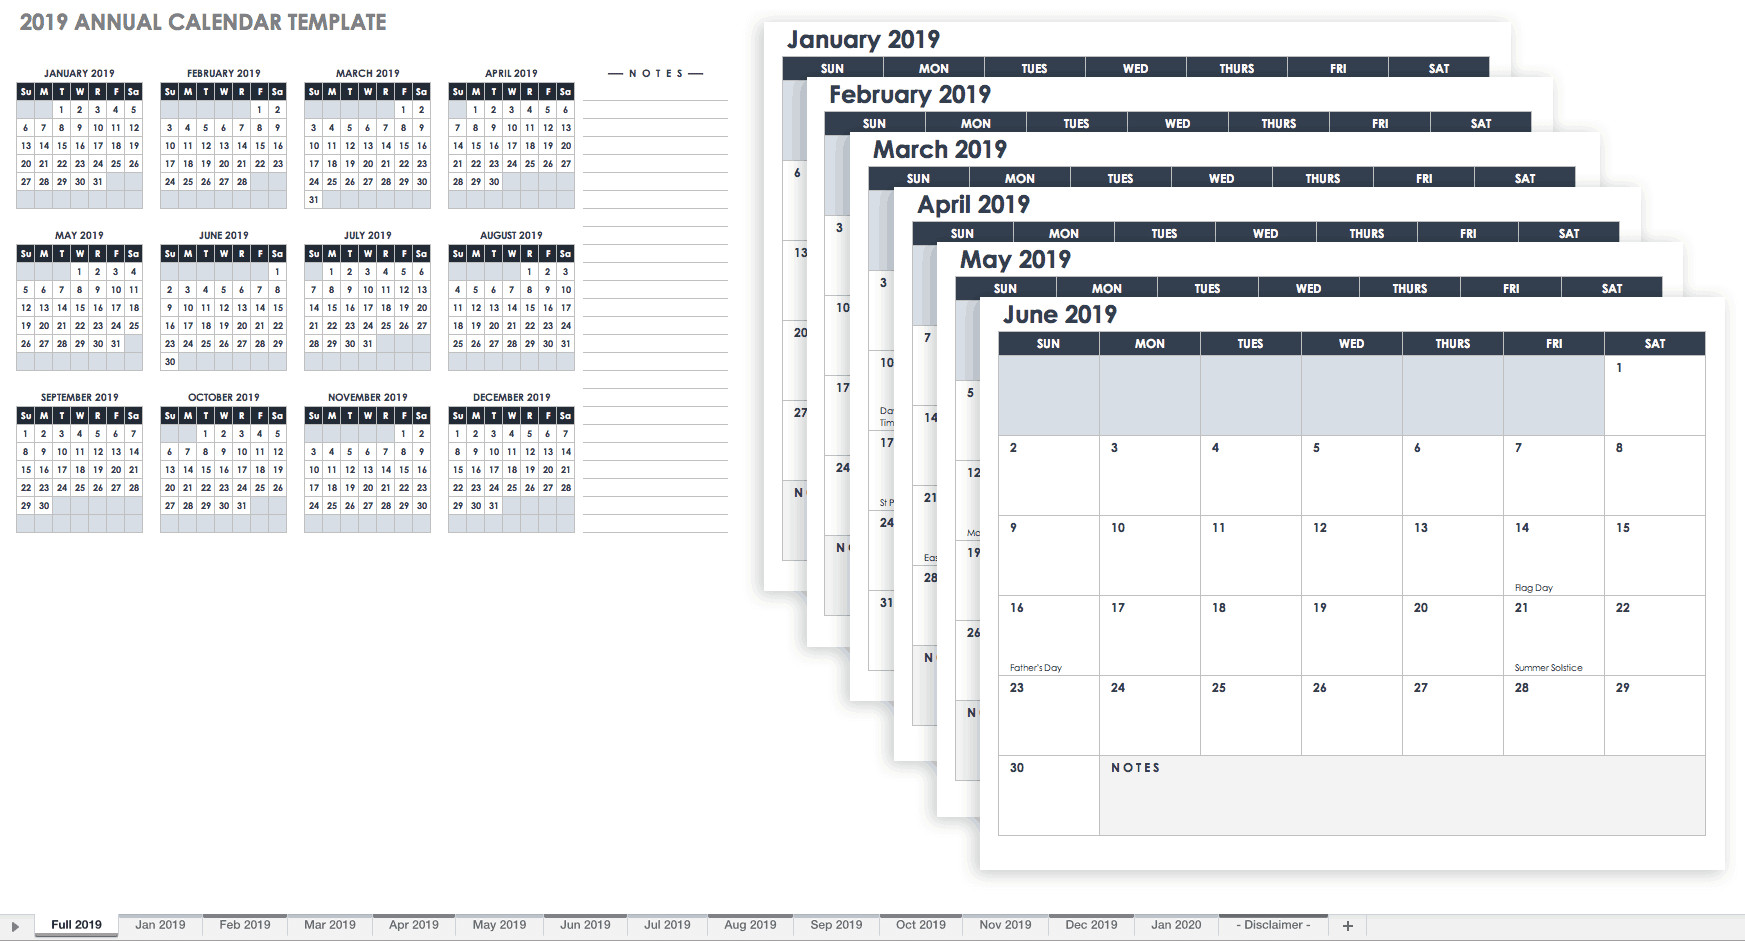 Monthly Calendar For 2019 15 Free Monthly Calendar Templates | Smartsheet